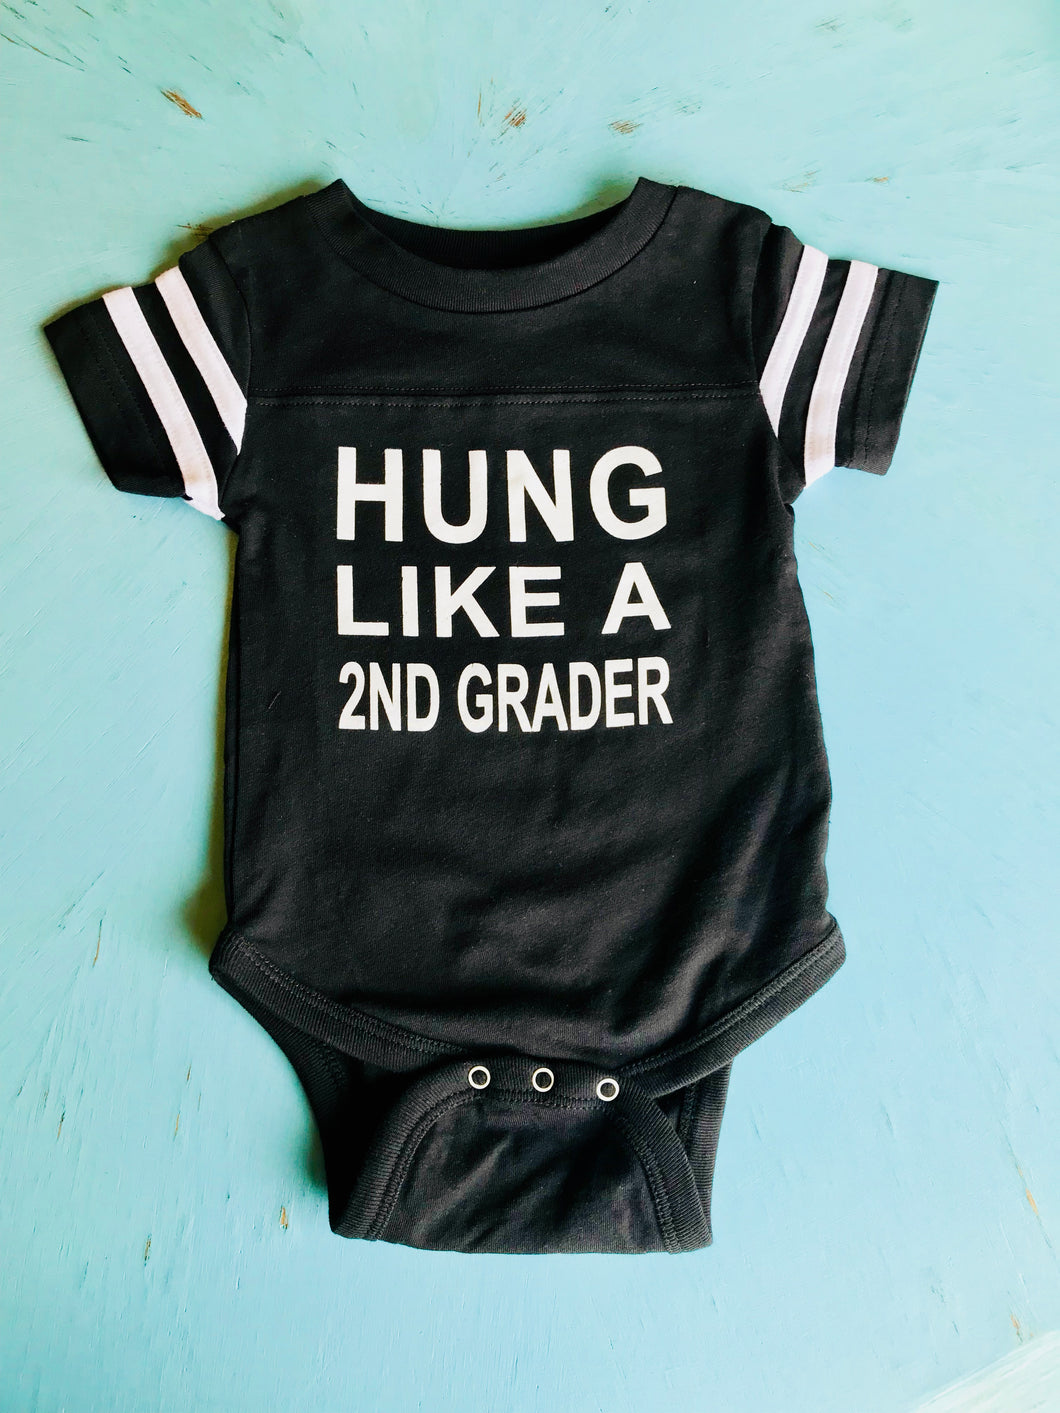 Hung Like A 2nd Grader Onesie